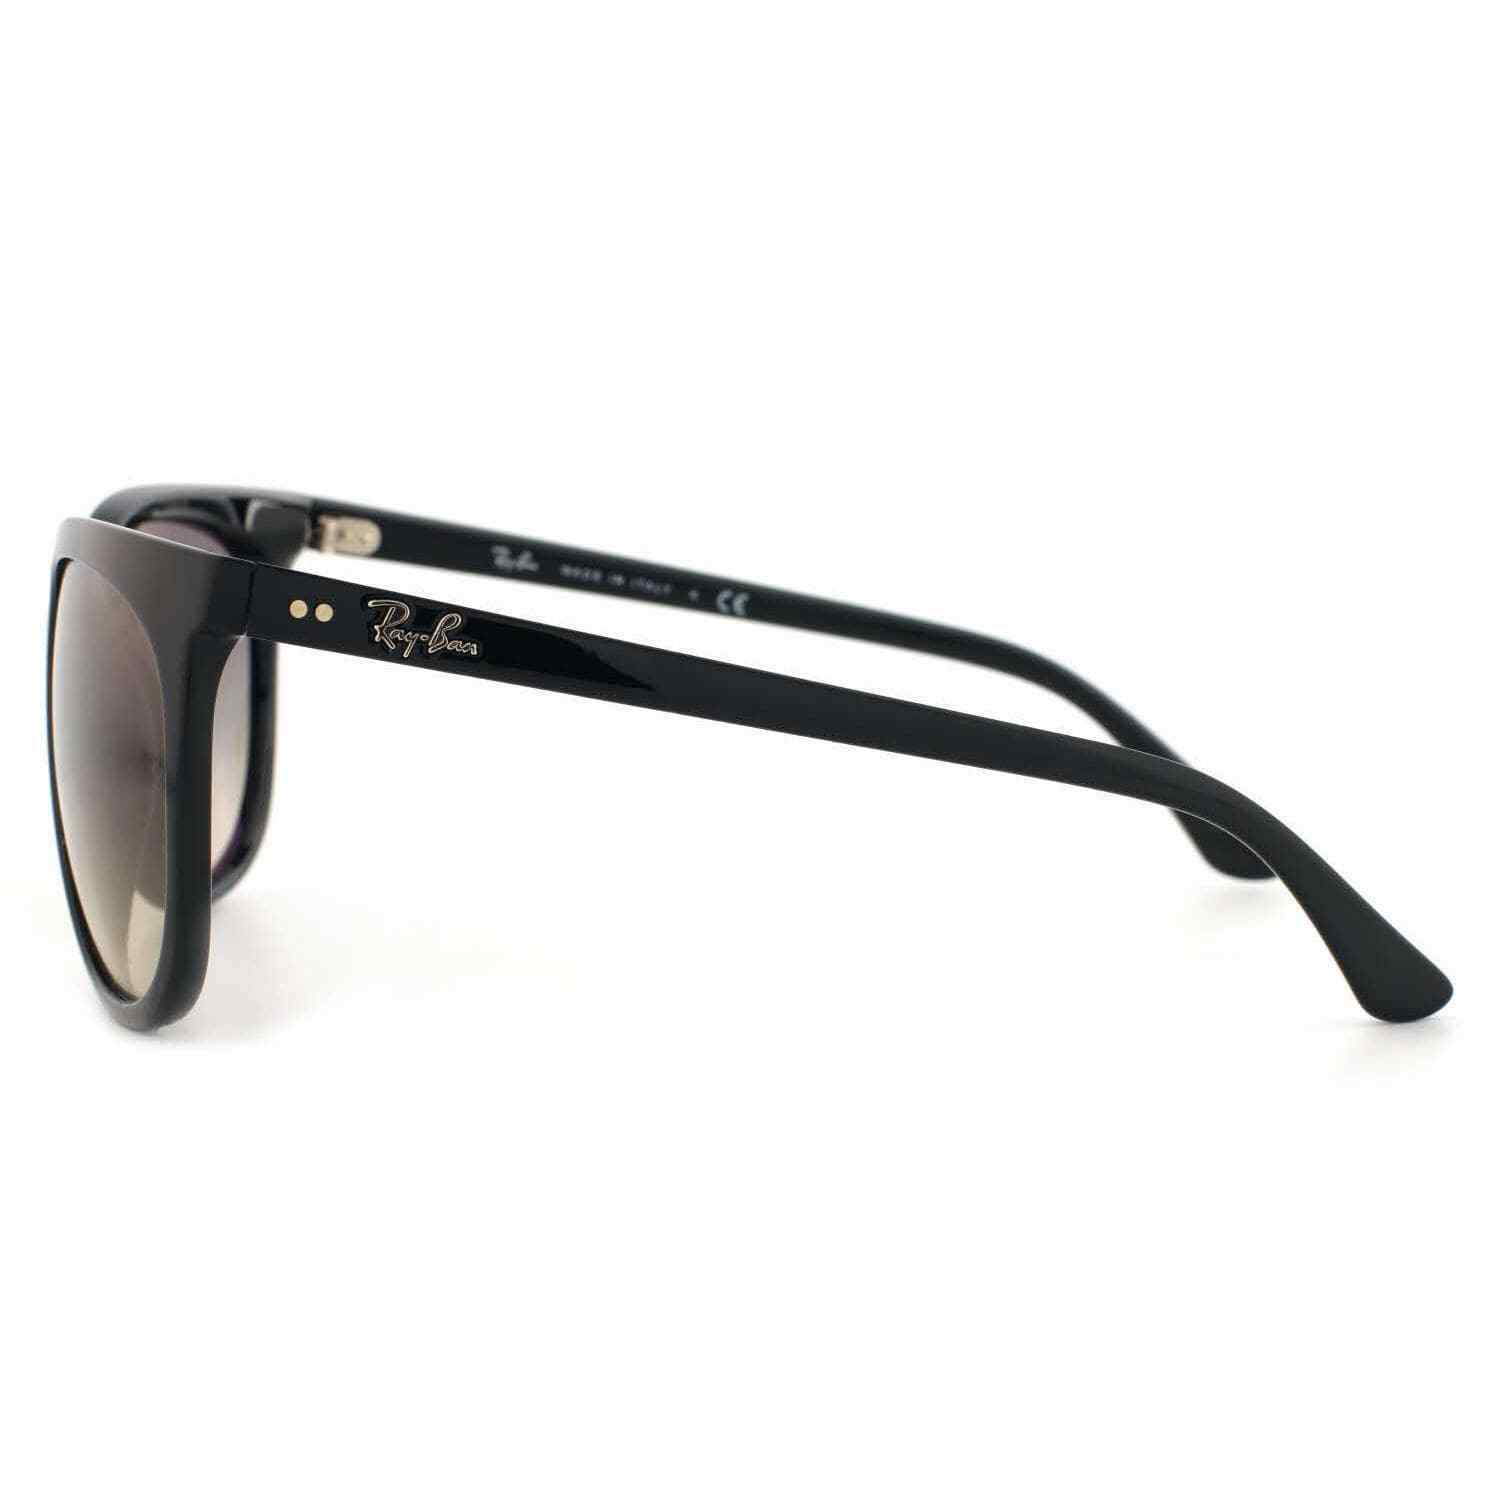 Nuevo Ray-Ban Cats 1000 RB 4126 601/32 Negro Pulido con / Gris Degradado 57 Mm